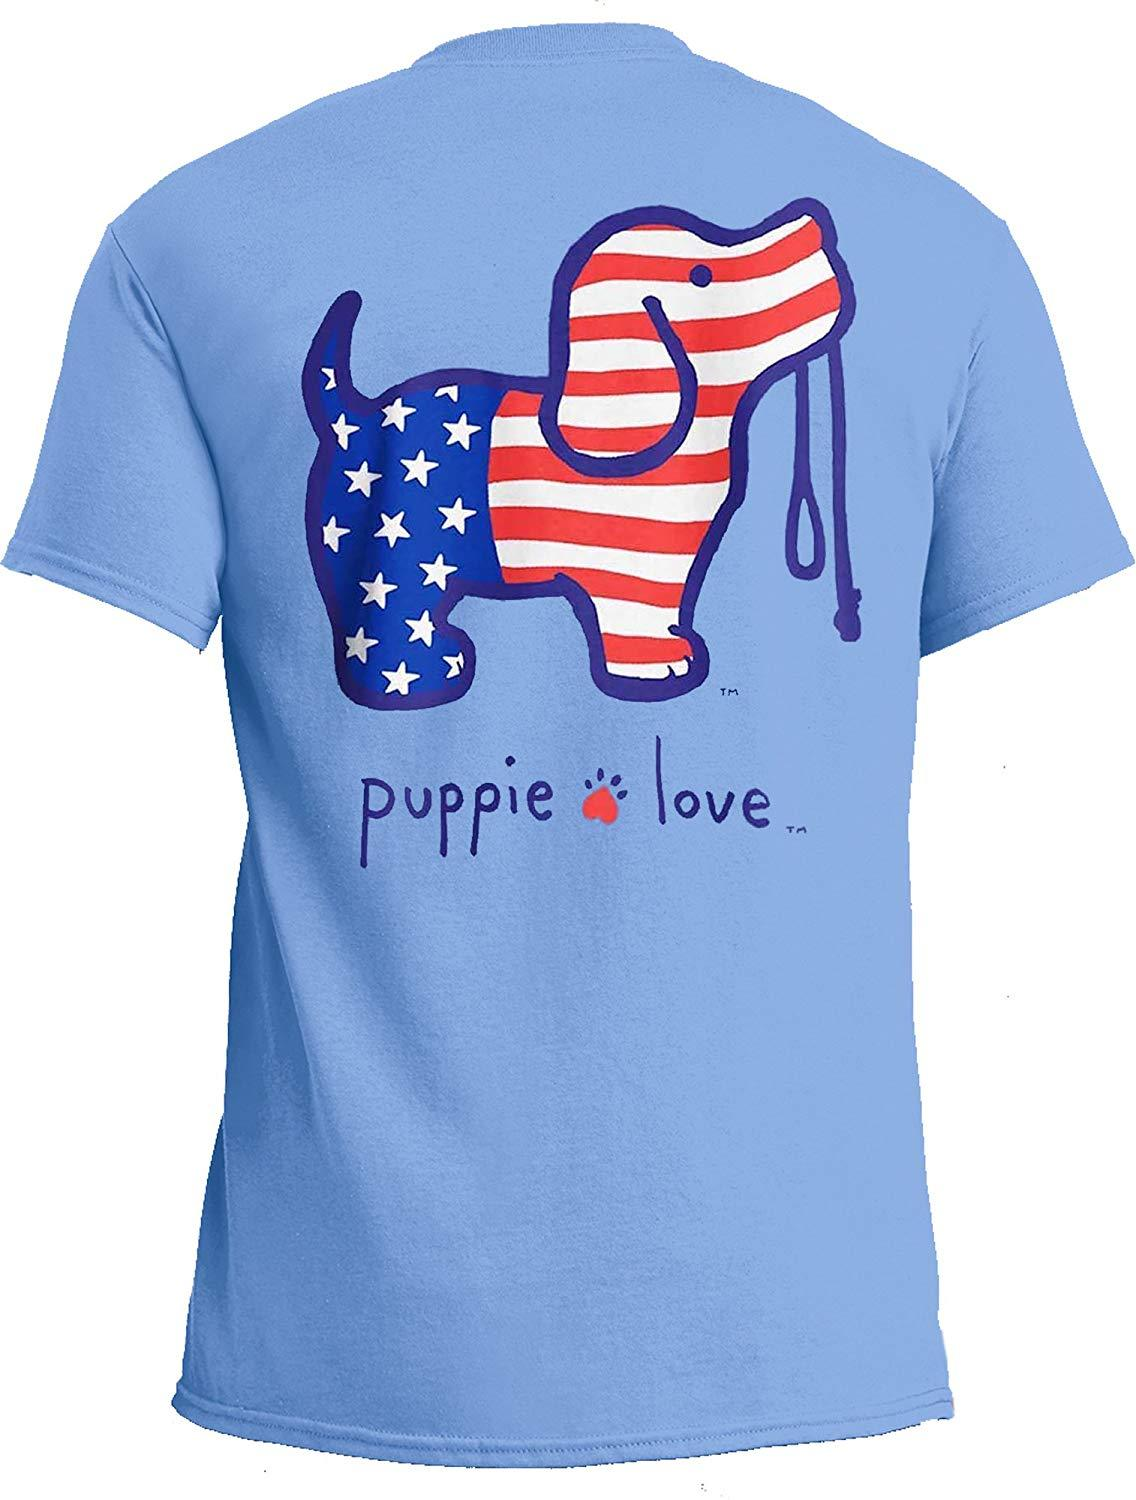 Puppie Love Rescue Dog Adult Unisex Short Sleeve Graphic T-Shirt, USA Pup